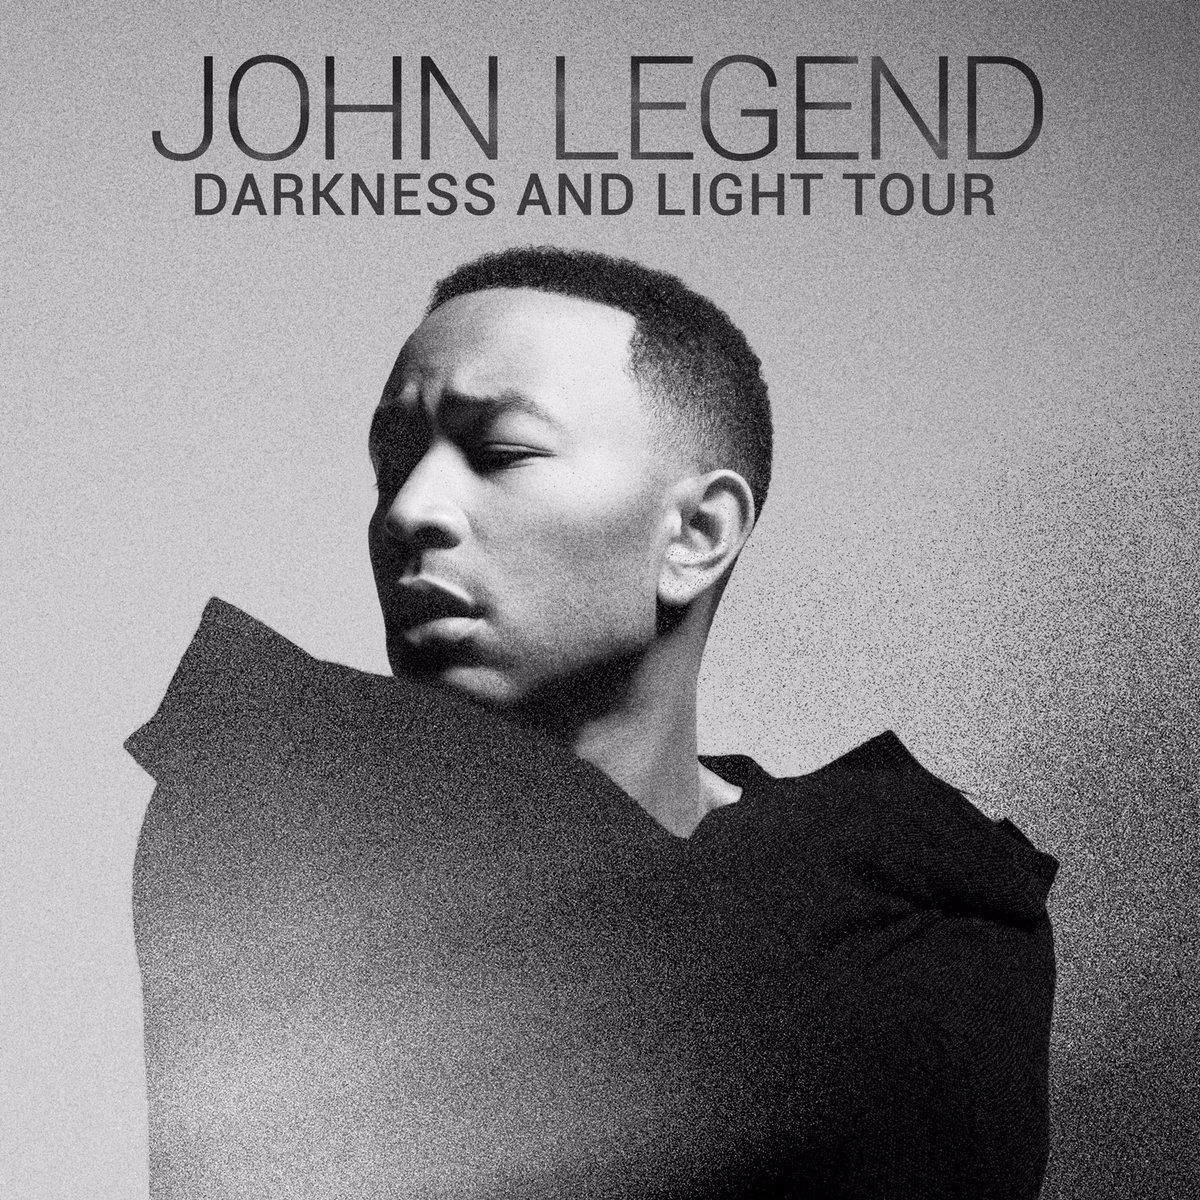 John Legend at The Theater at Madison Square Garden